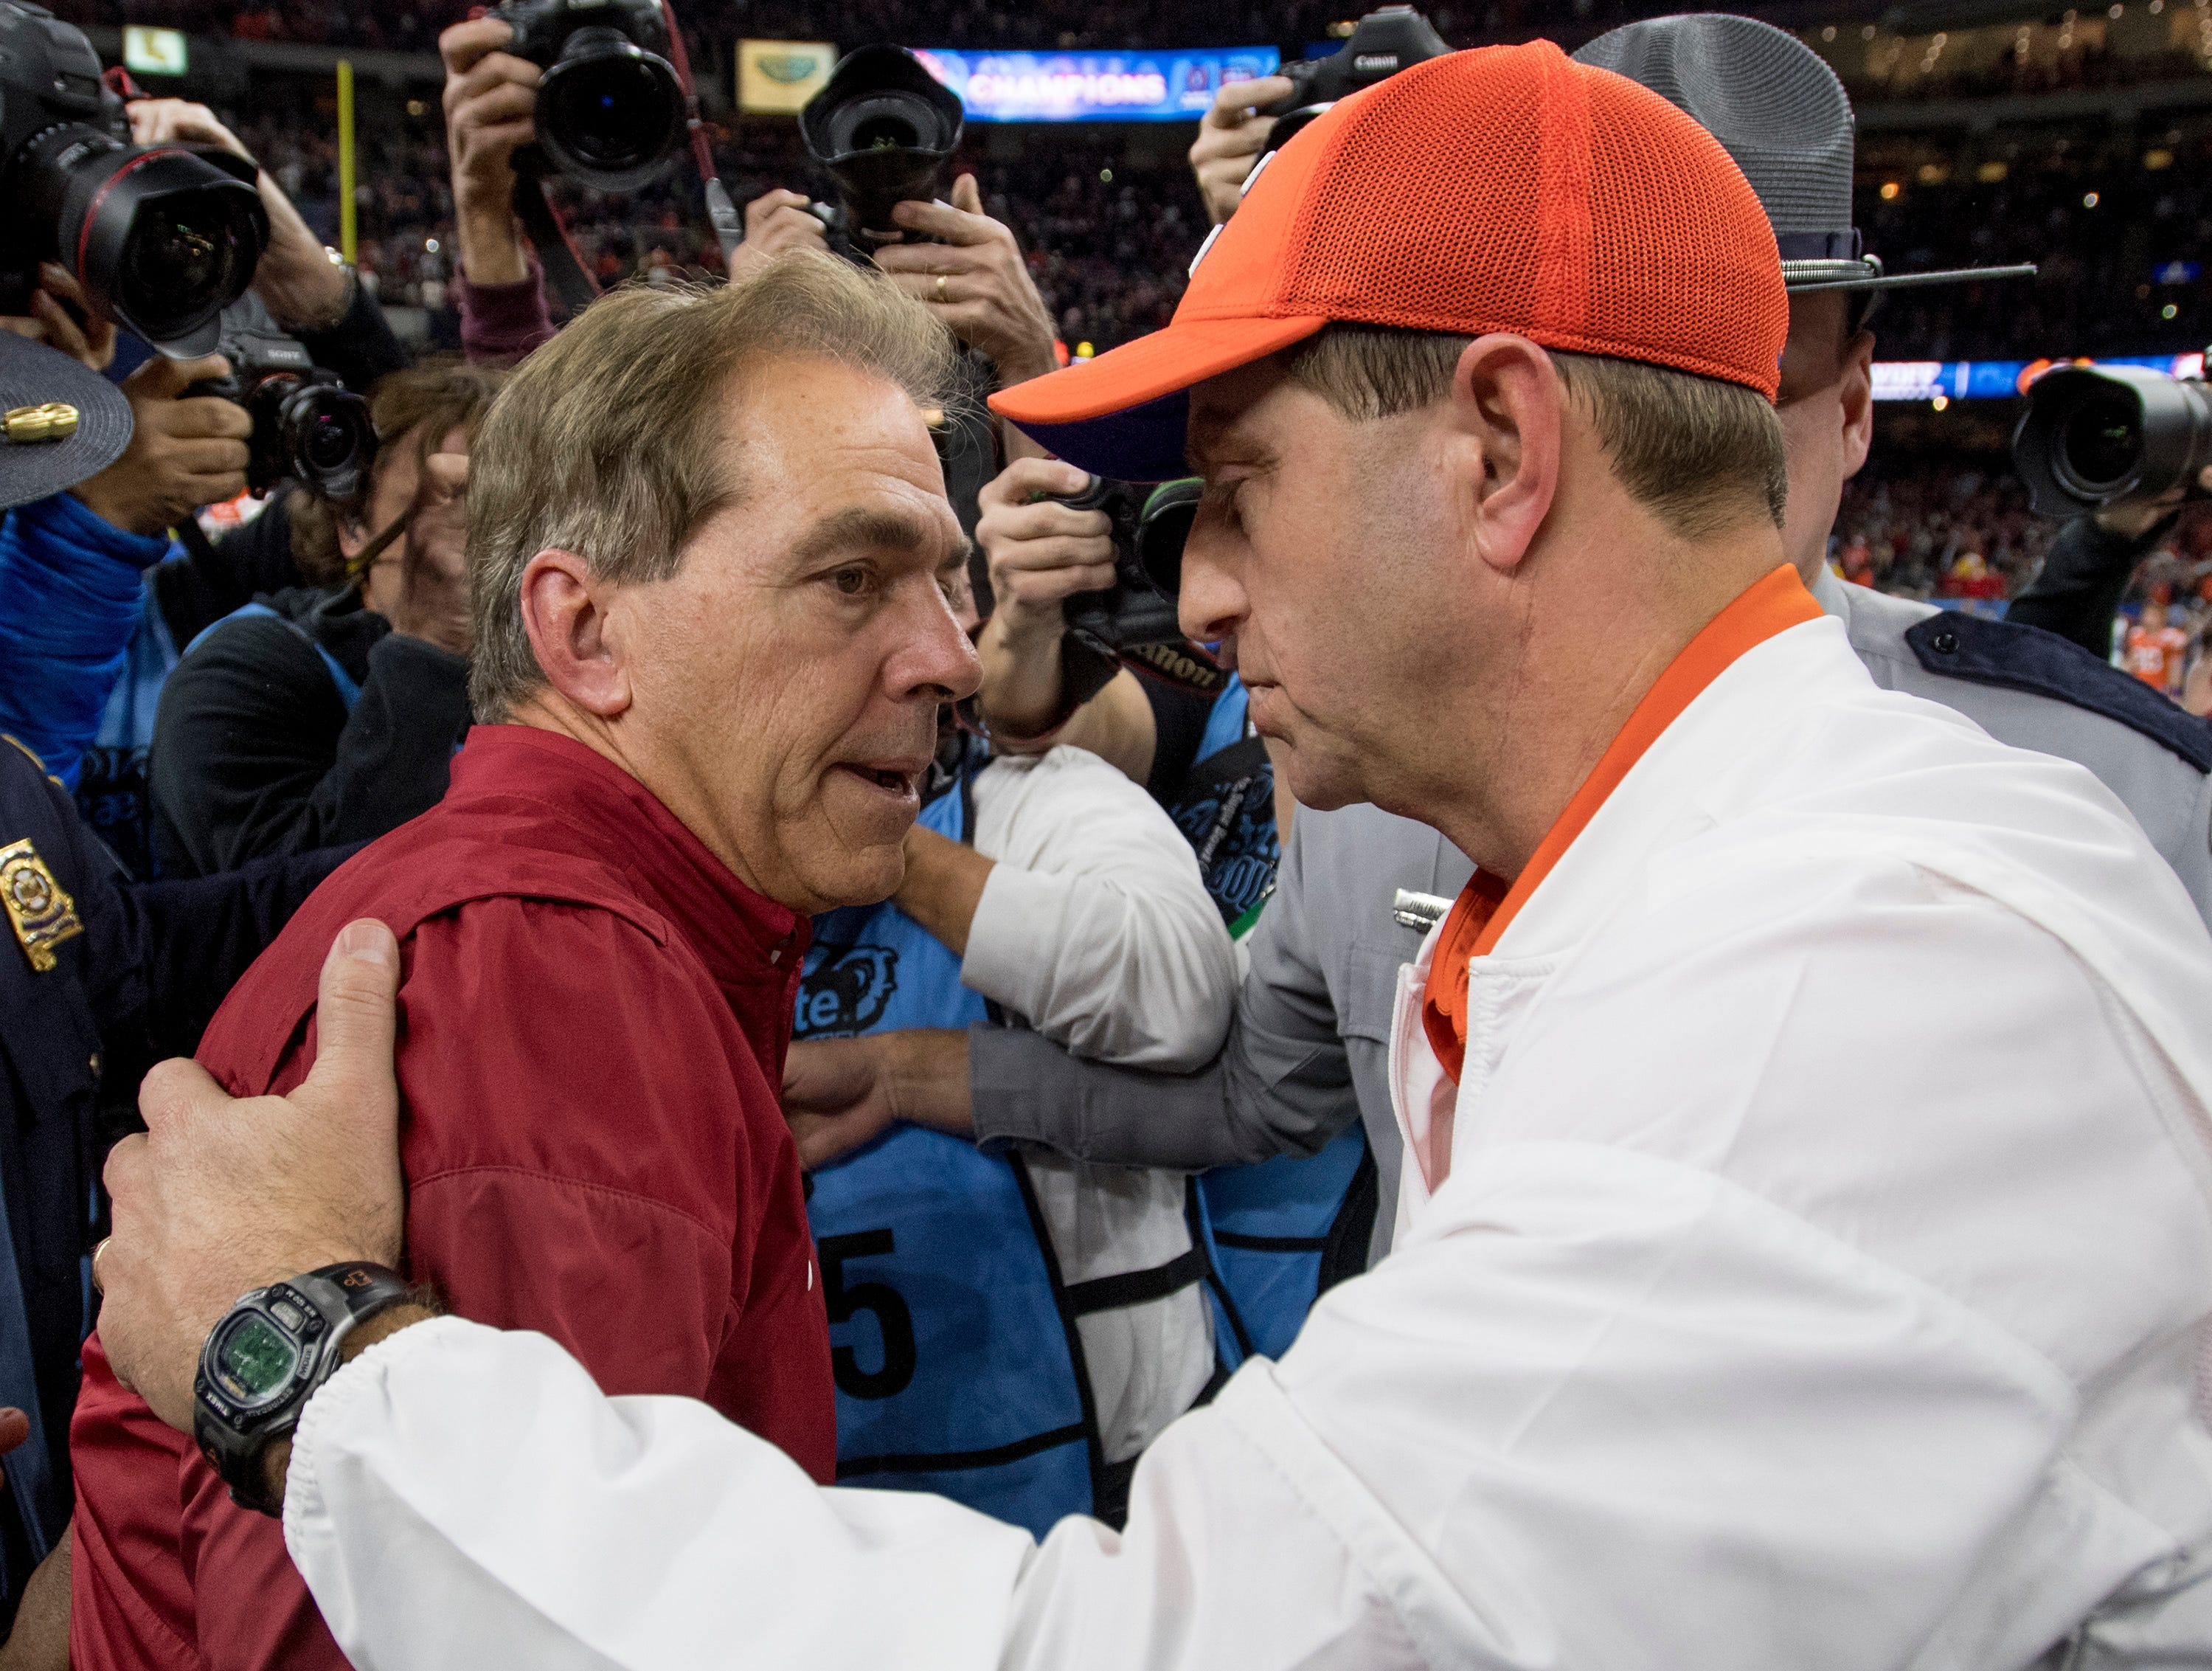 Alabama head coach Nick Saban and Clemson head coach Dabo Swinney  meet at midfield after the Sugar Bowl at the Superdome in New Orleans, La. on Monday January 1, 2018.